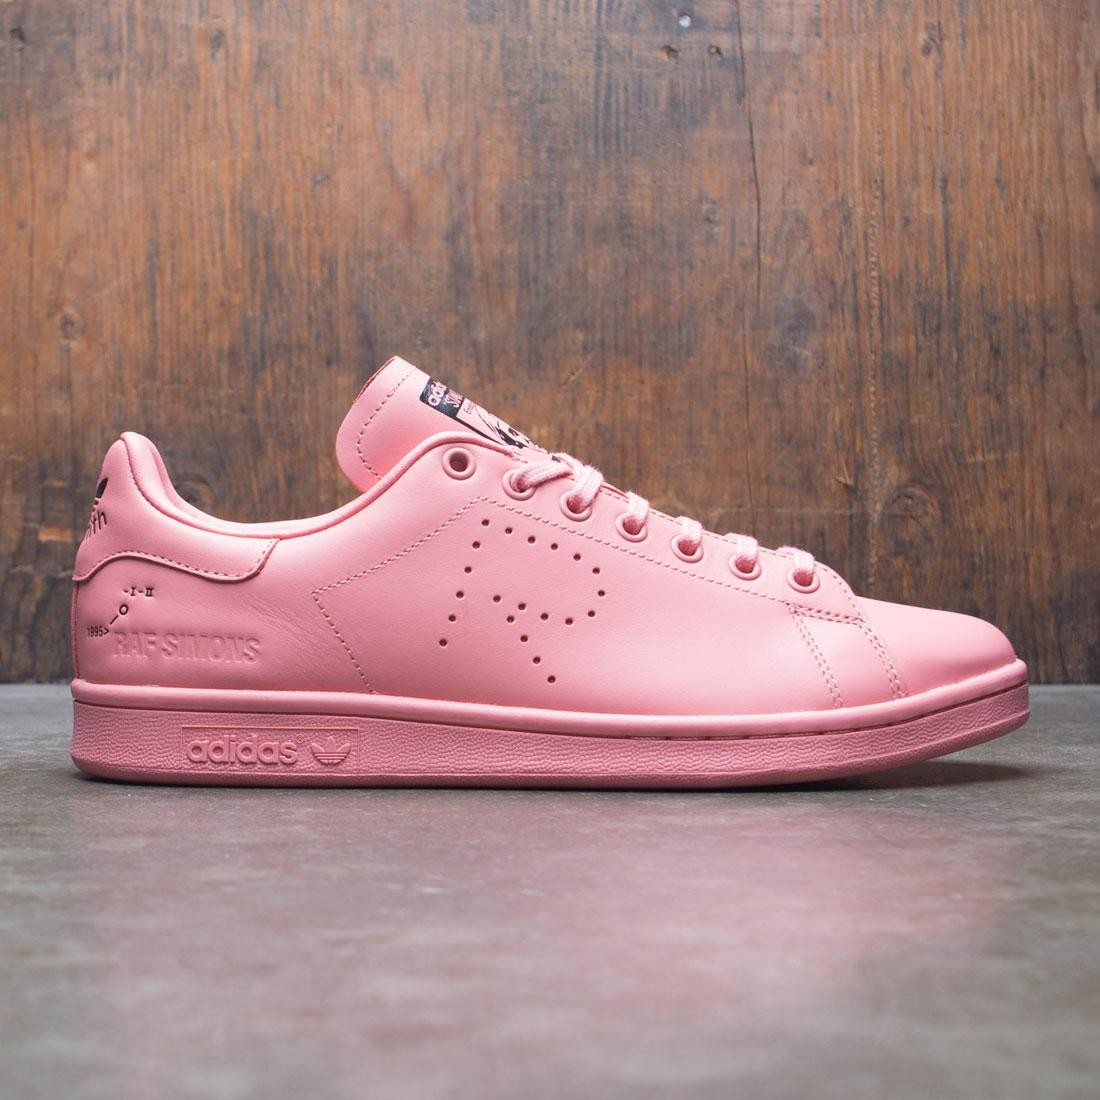 【海外限定】アディダス ローズ ピンク メンズ靴 靴 【 ADIDAS ROSE PINK RAF SIMONS MEN RS STAN SMITH TACTILE BLISS FOOTWEAR WHITE 】